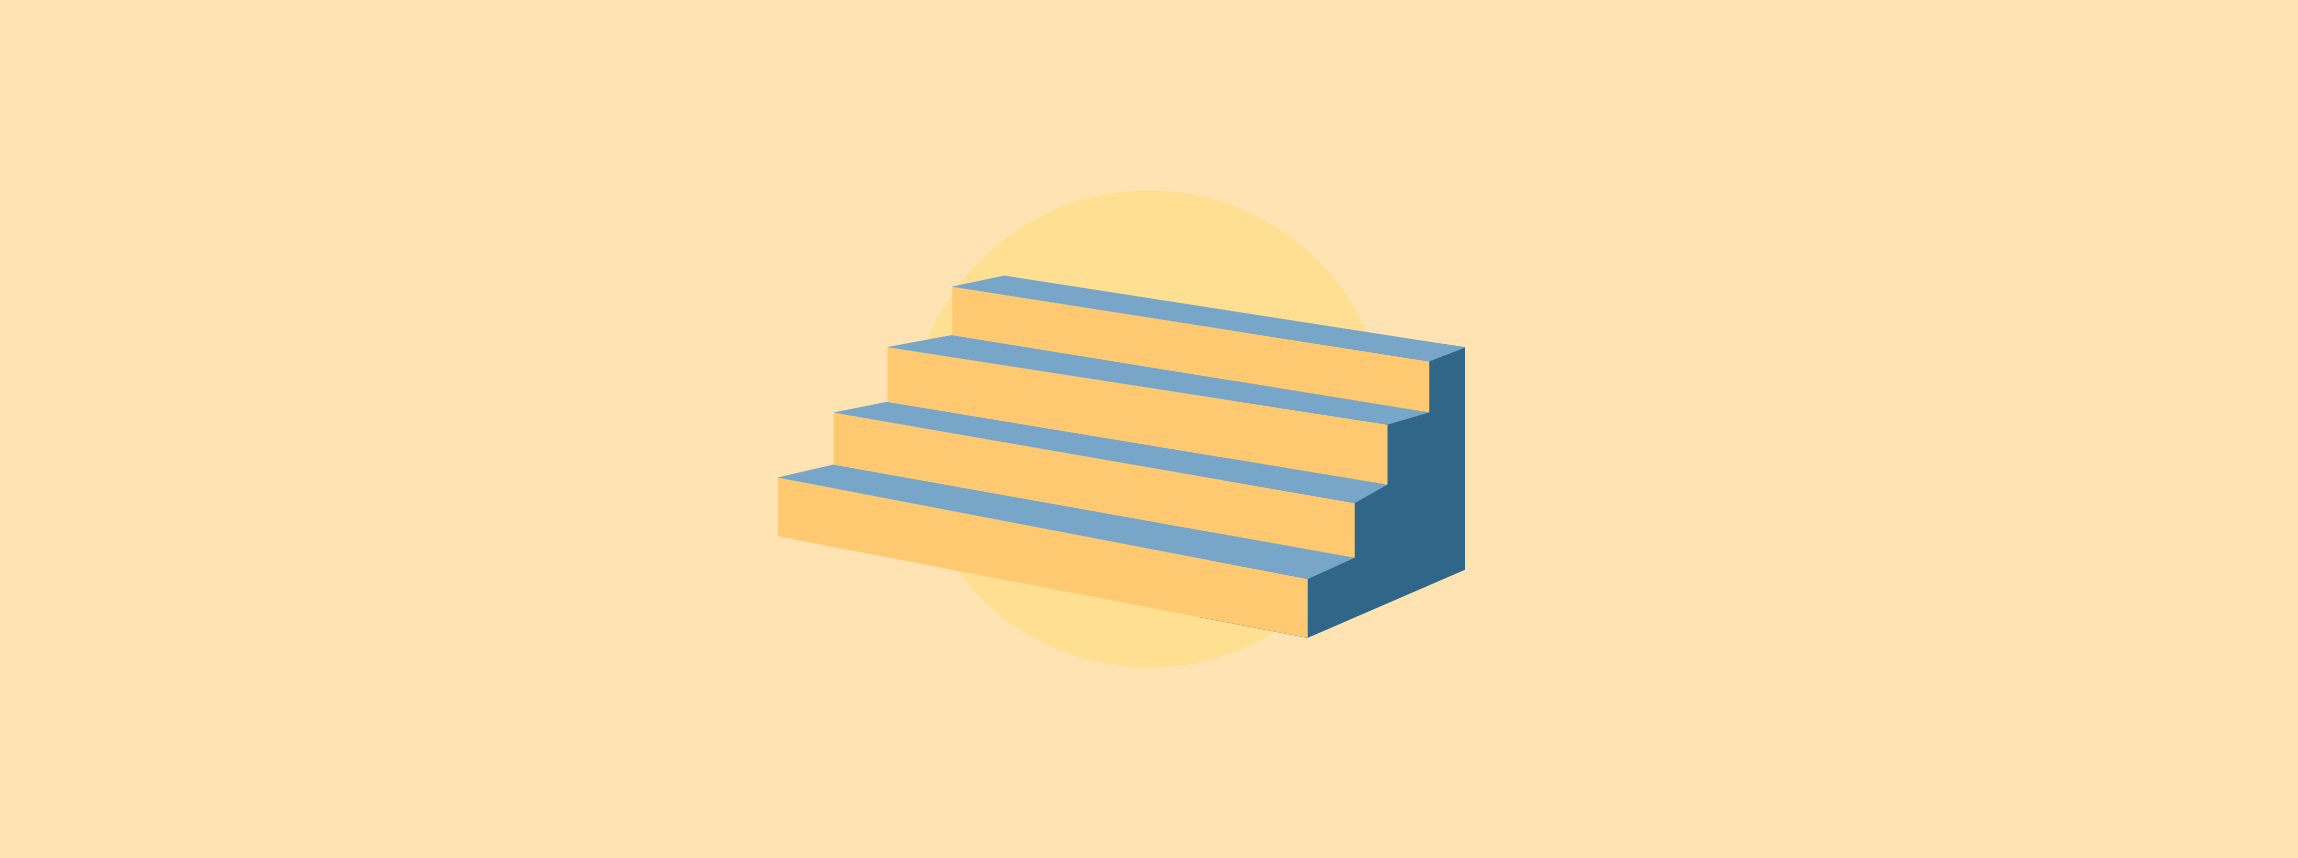 Staircase Javascript Algorithm In Today S Algorithm We Are Going To By Erica N Medium